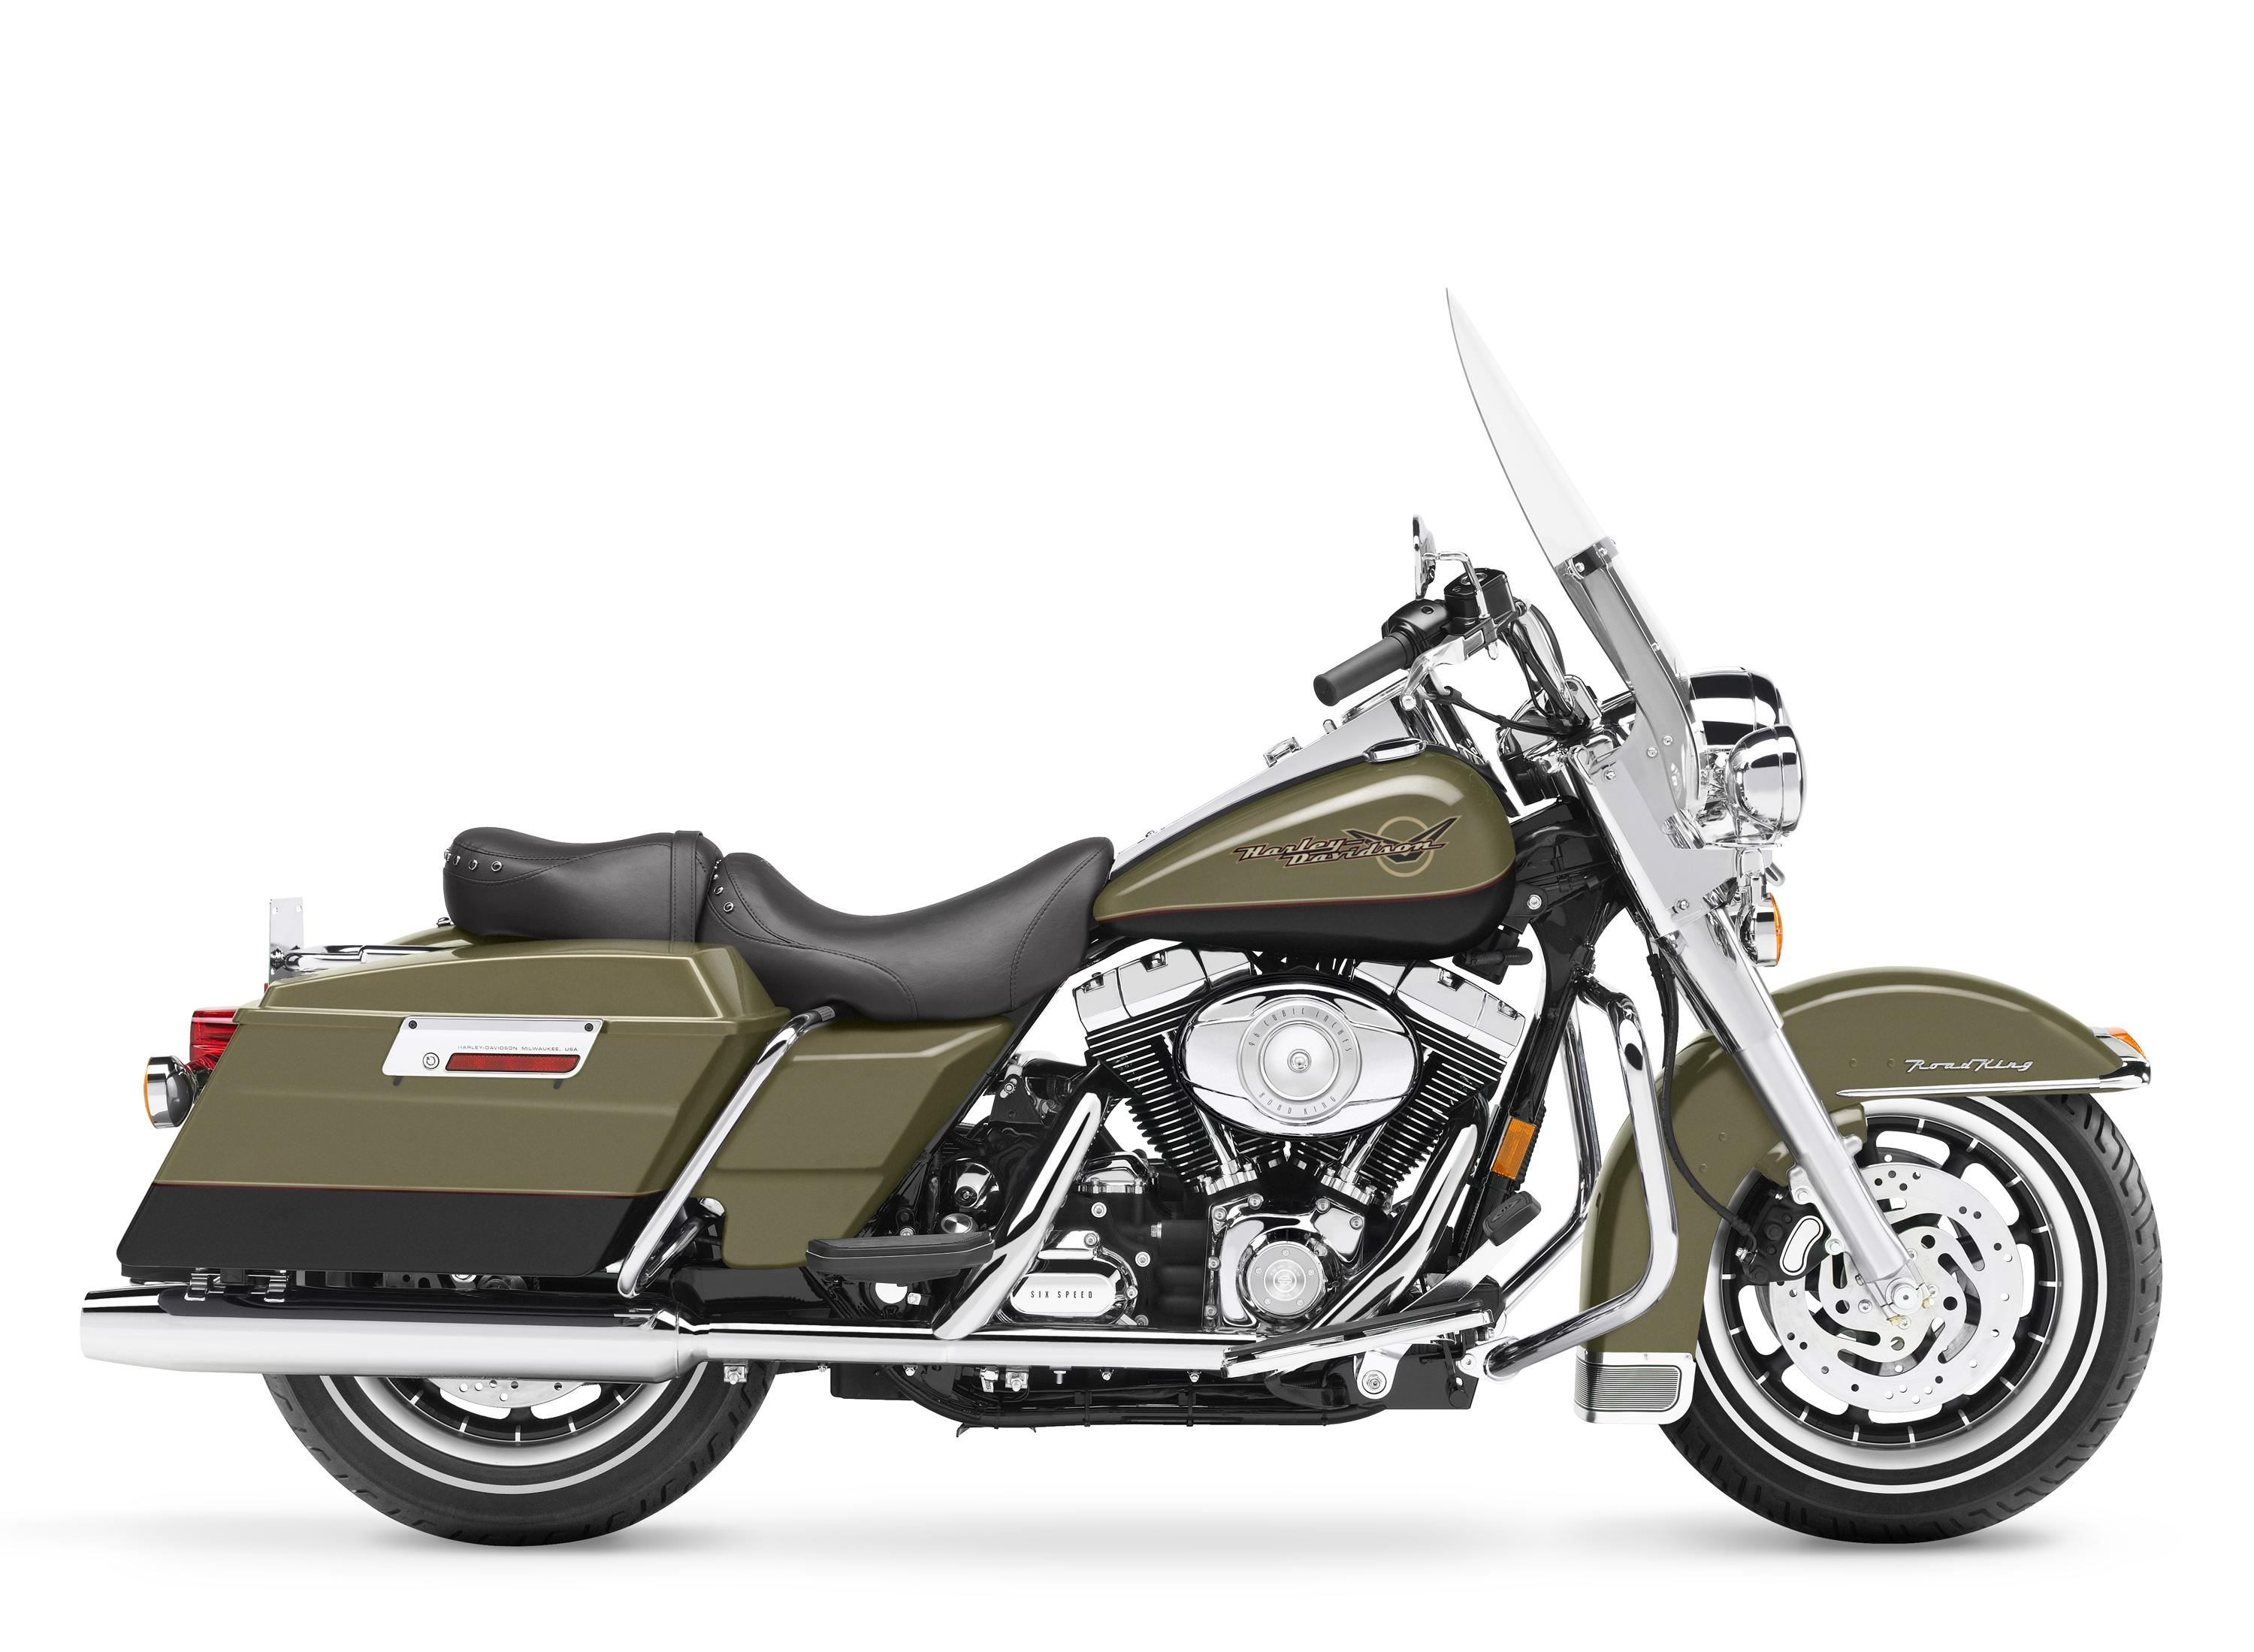 2007 Harley-Davidson LHR Road King | Top Speed